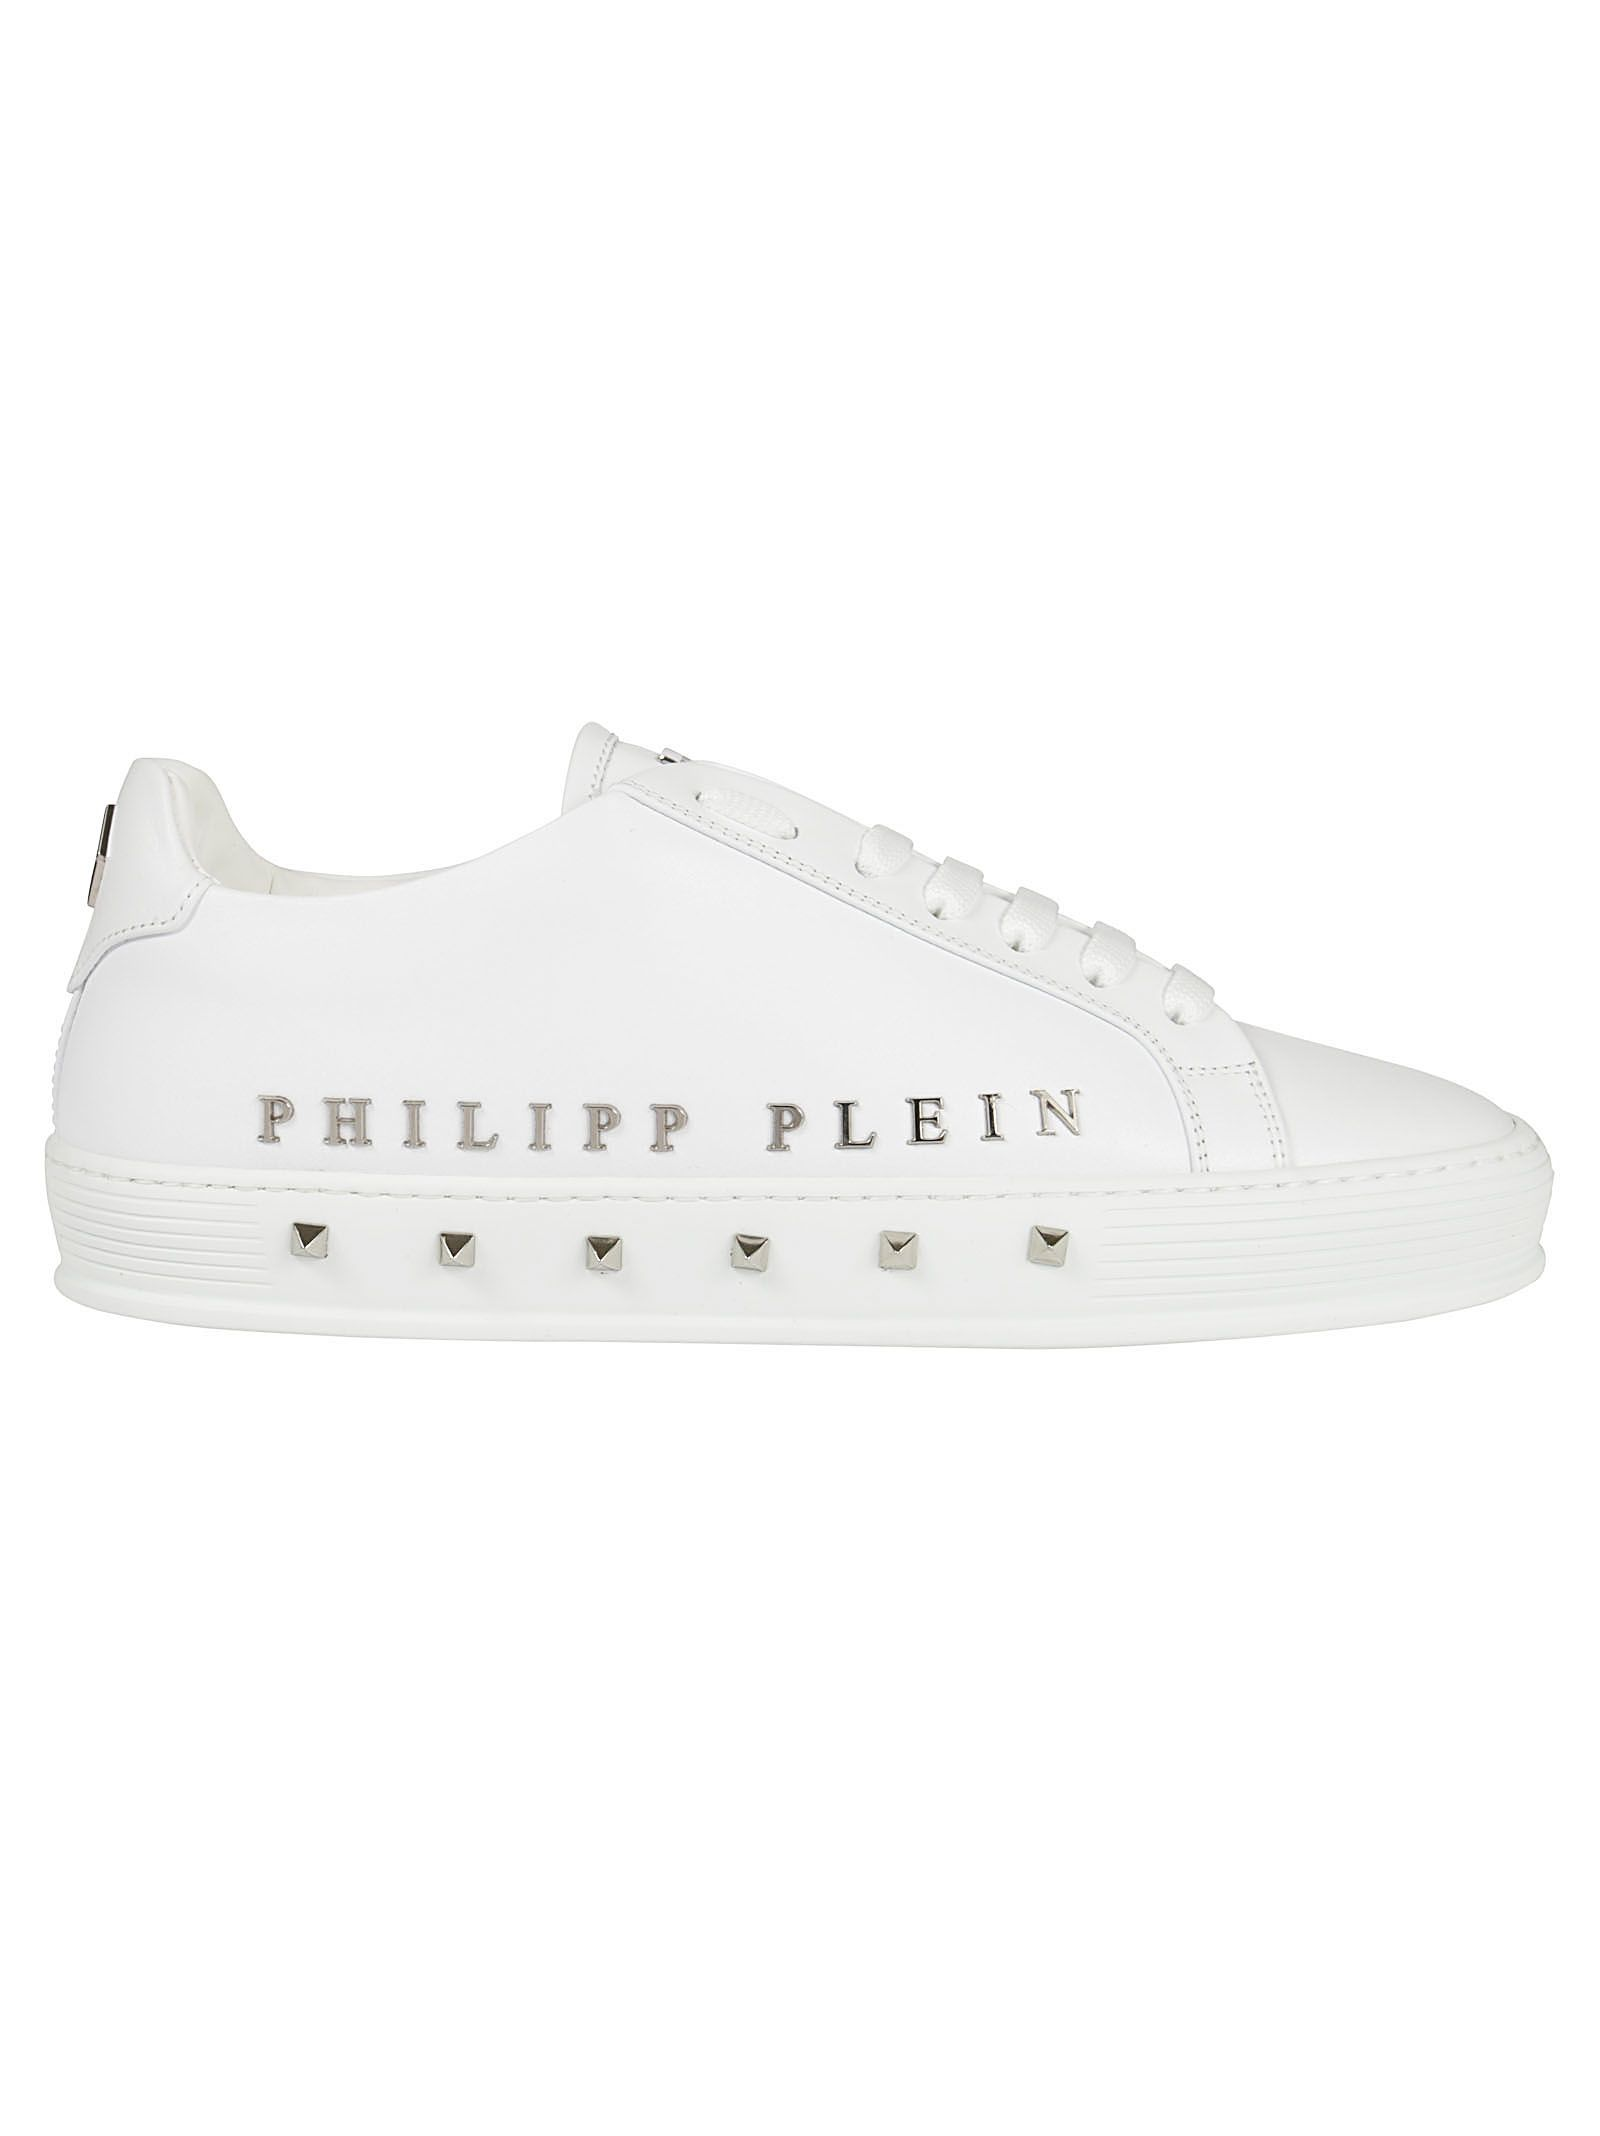 PHILIPP PLEIN THE FIRST TIME IN MY LIFE SNEAKERS